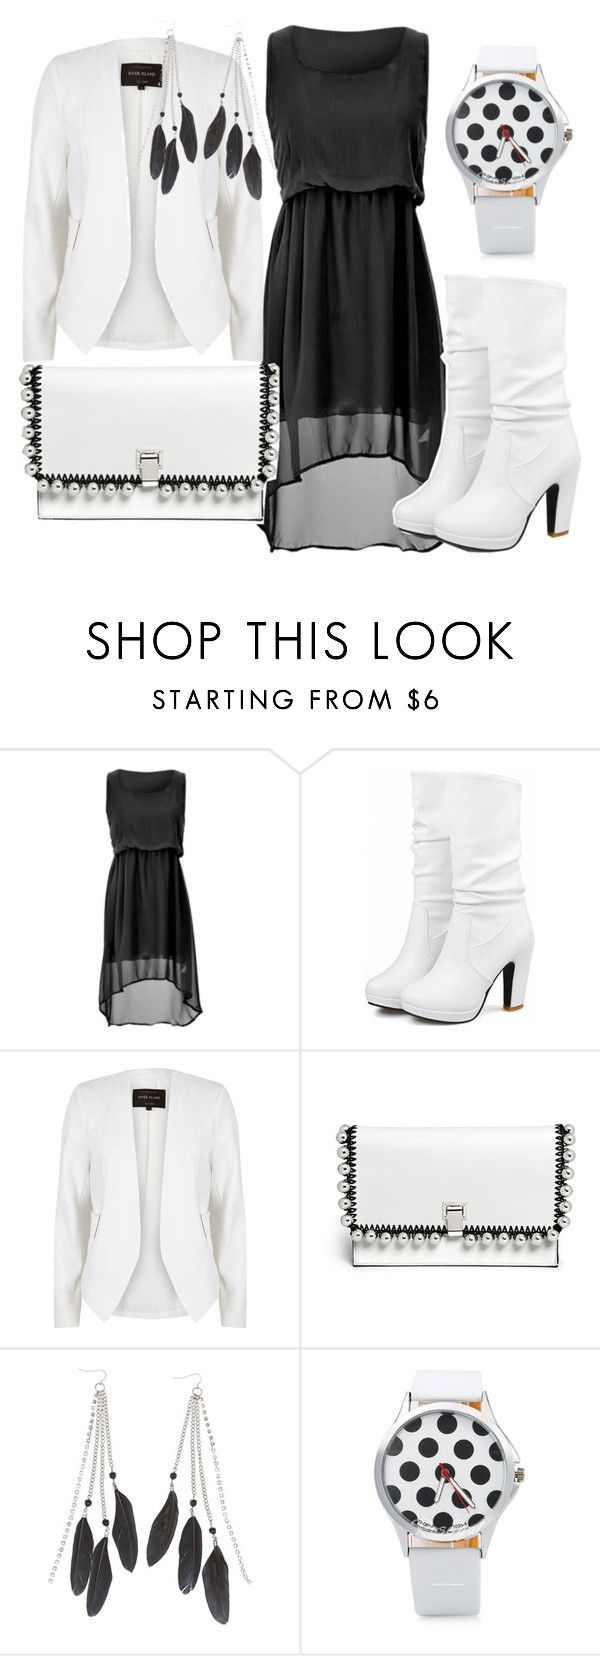 """Boots"" by christina-joann ❤ liked on Polyvore featuring River Island, Proenza Schouler and Charlotte Russe"